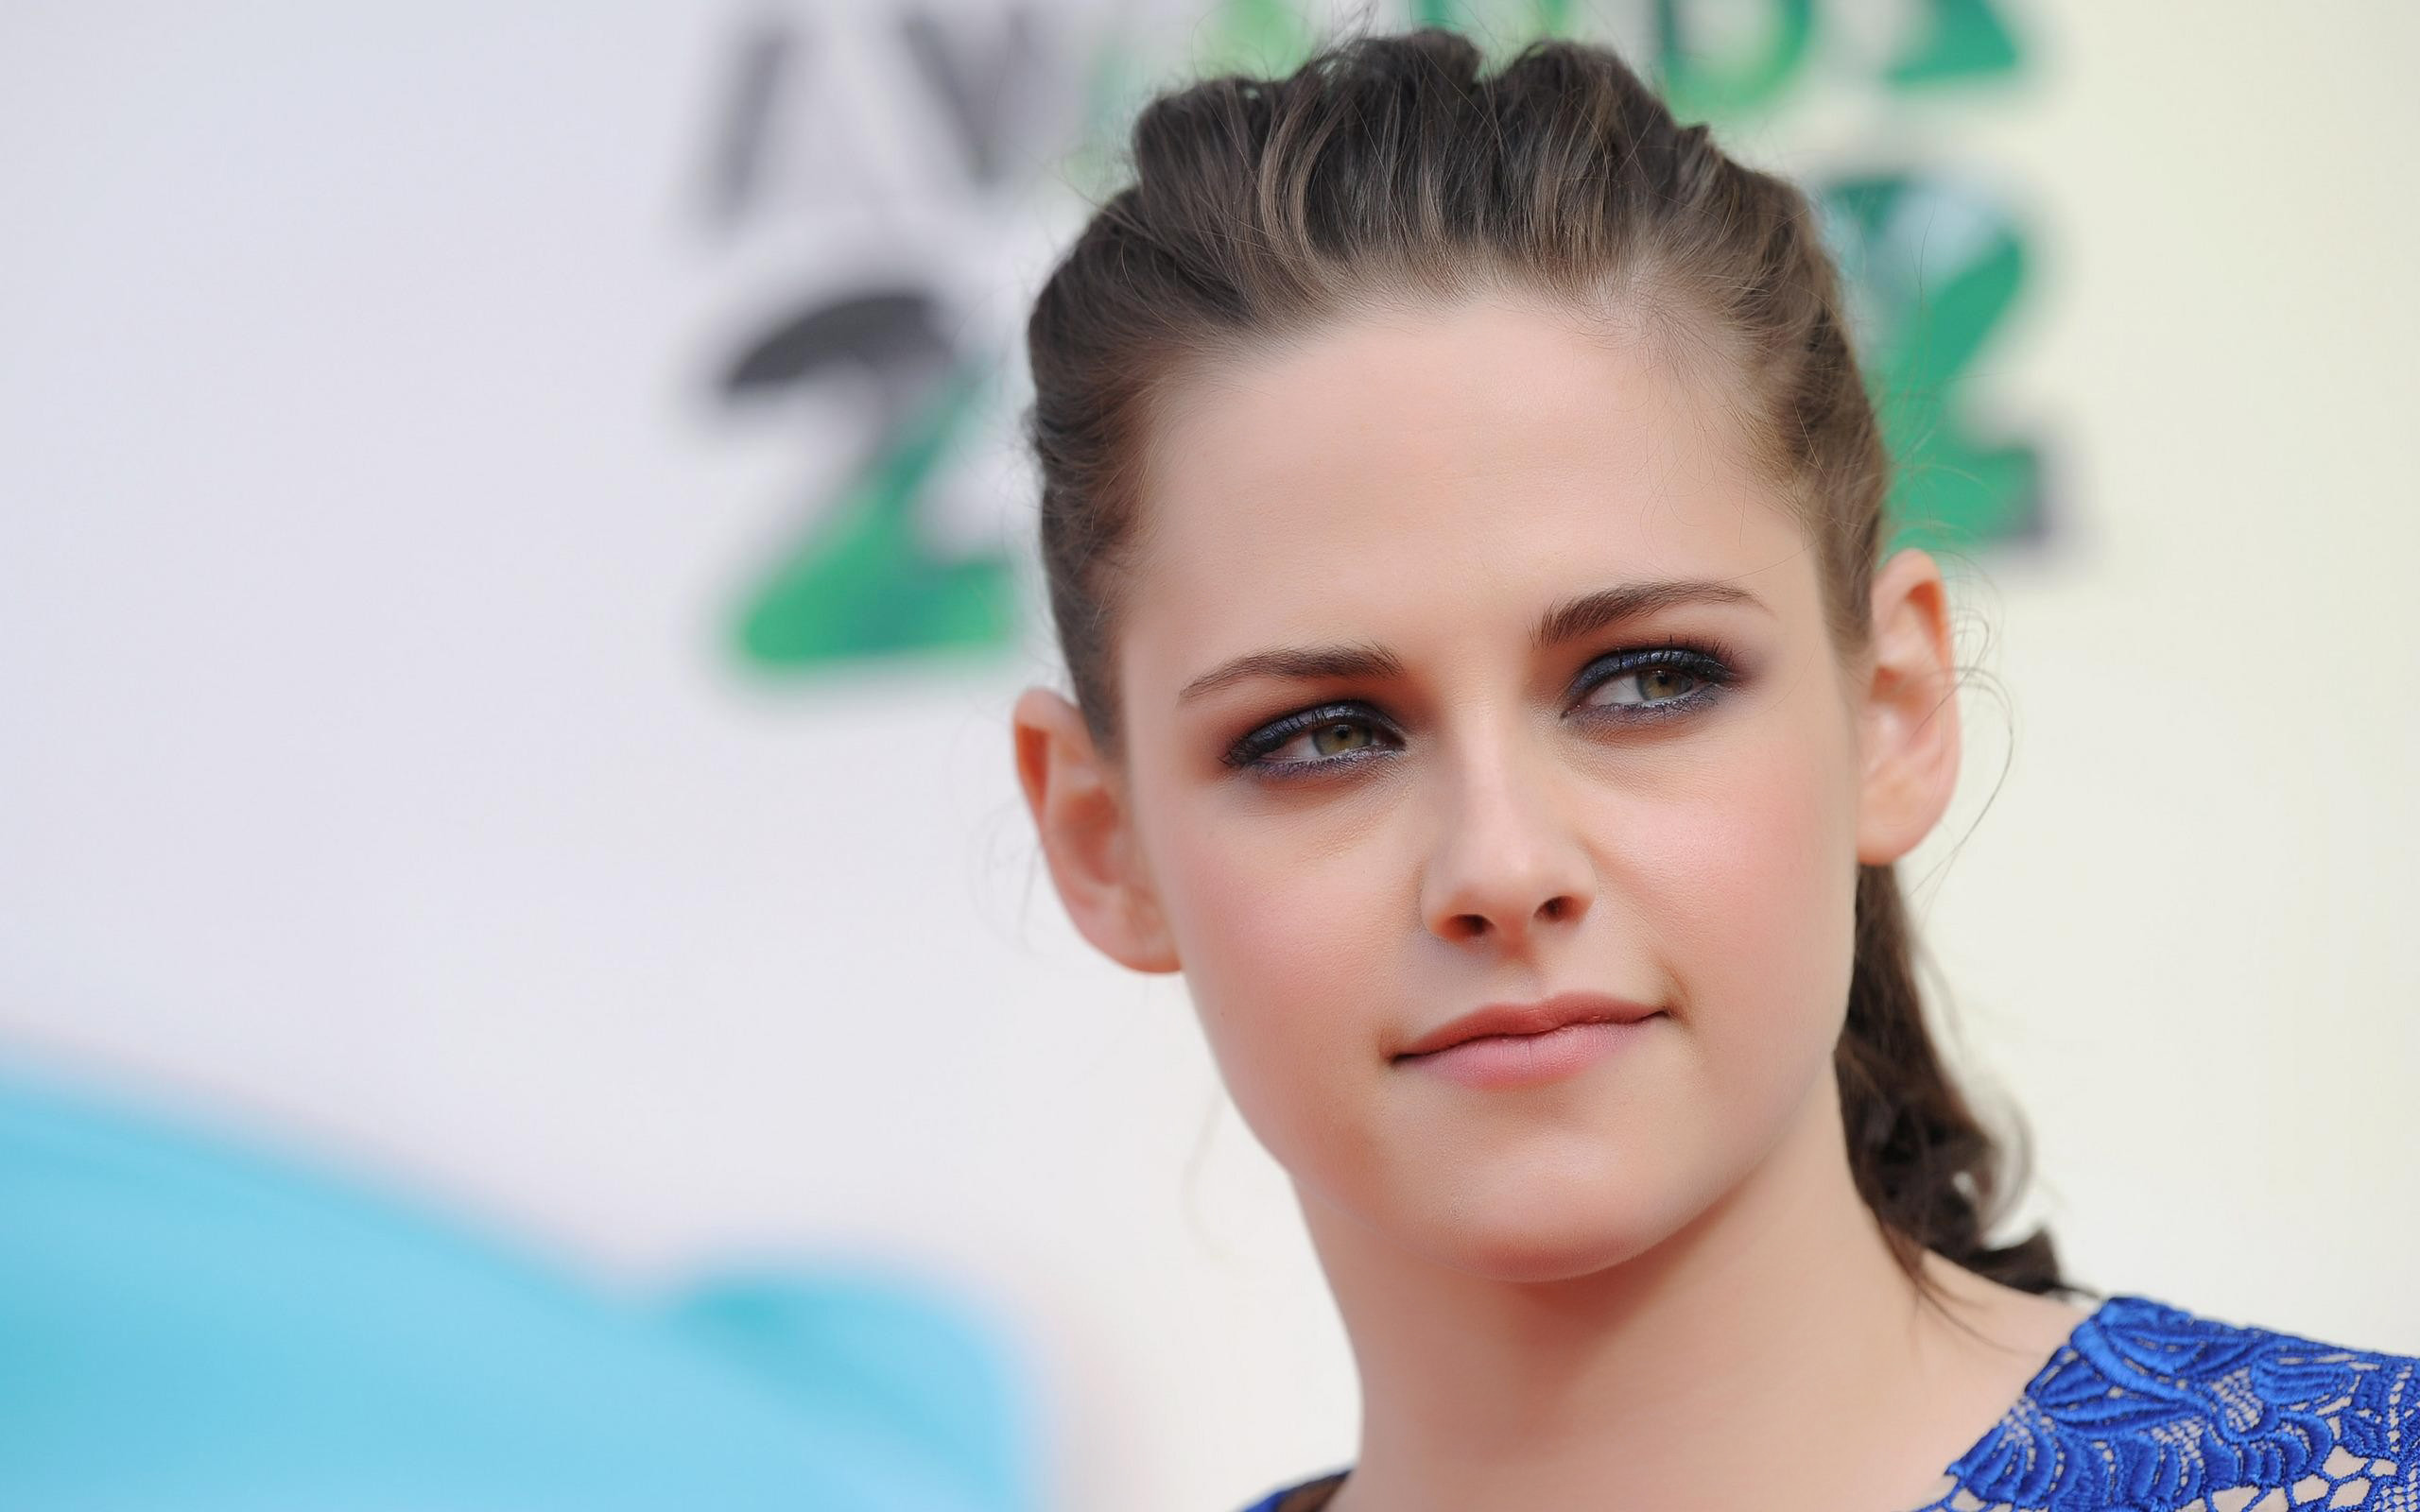 Res: 2560x1600, Celebrity - Kristen Stewart Wallpaper